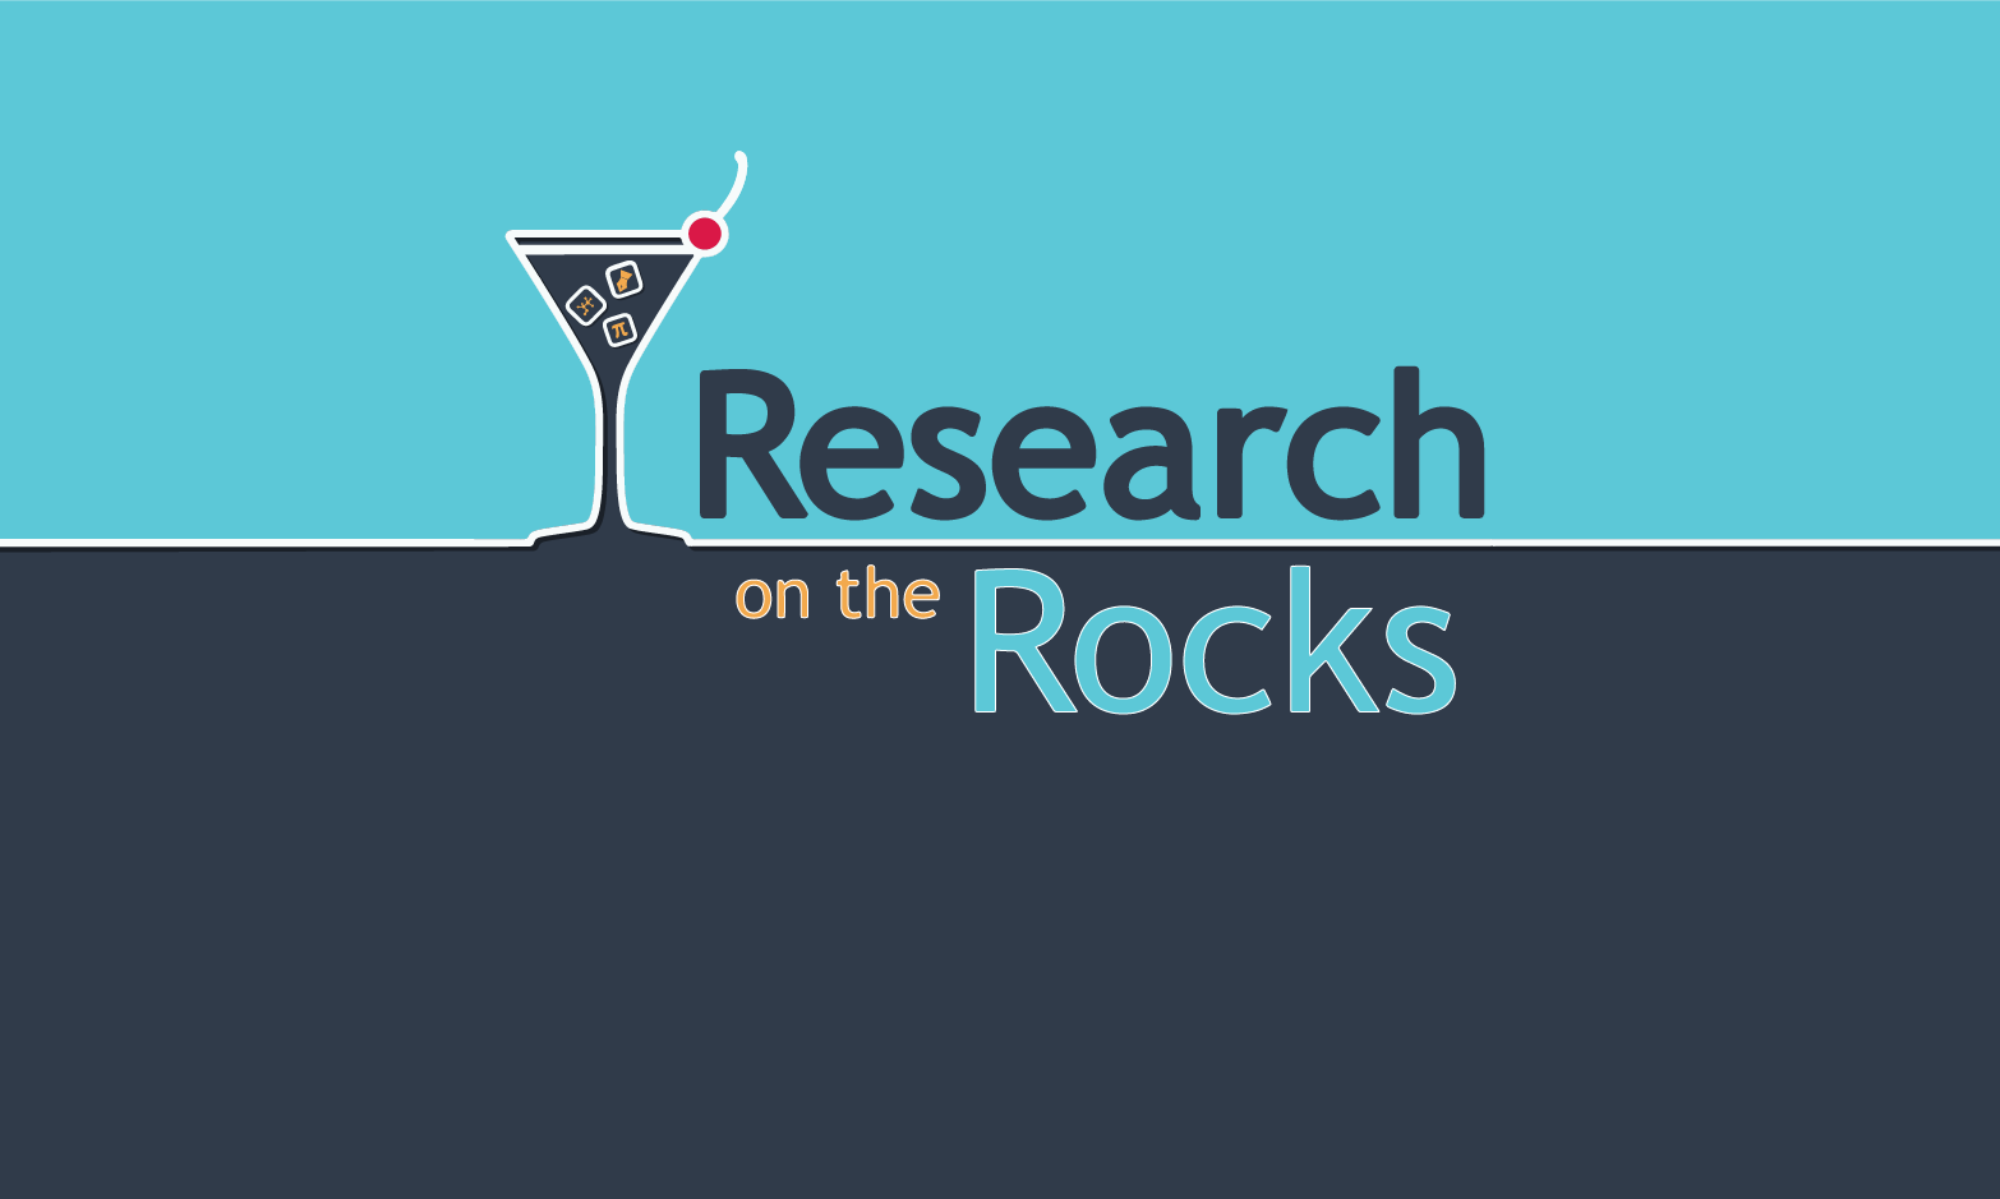 Research on the Rocks